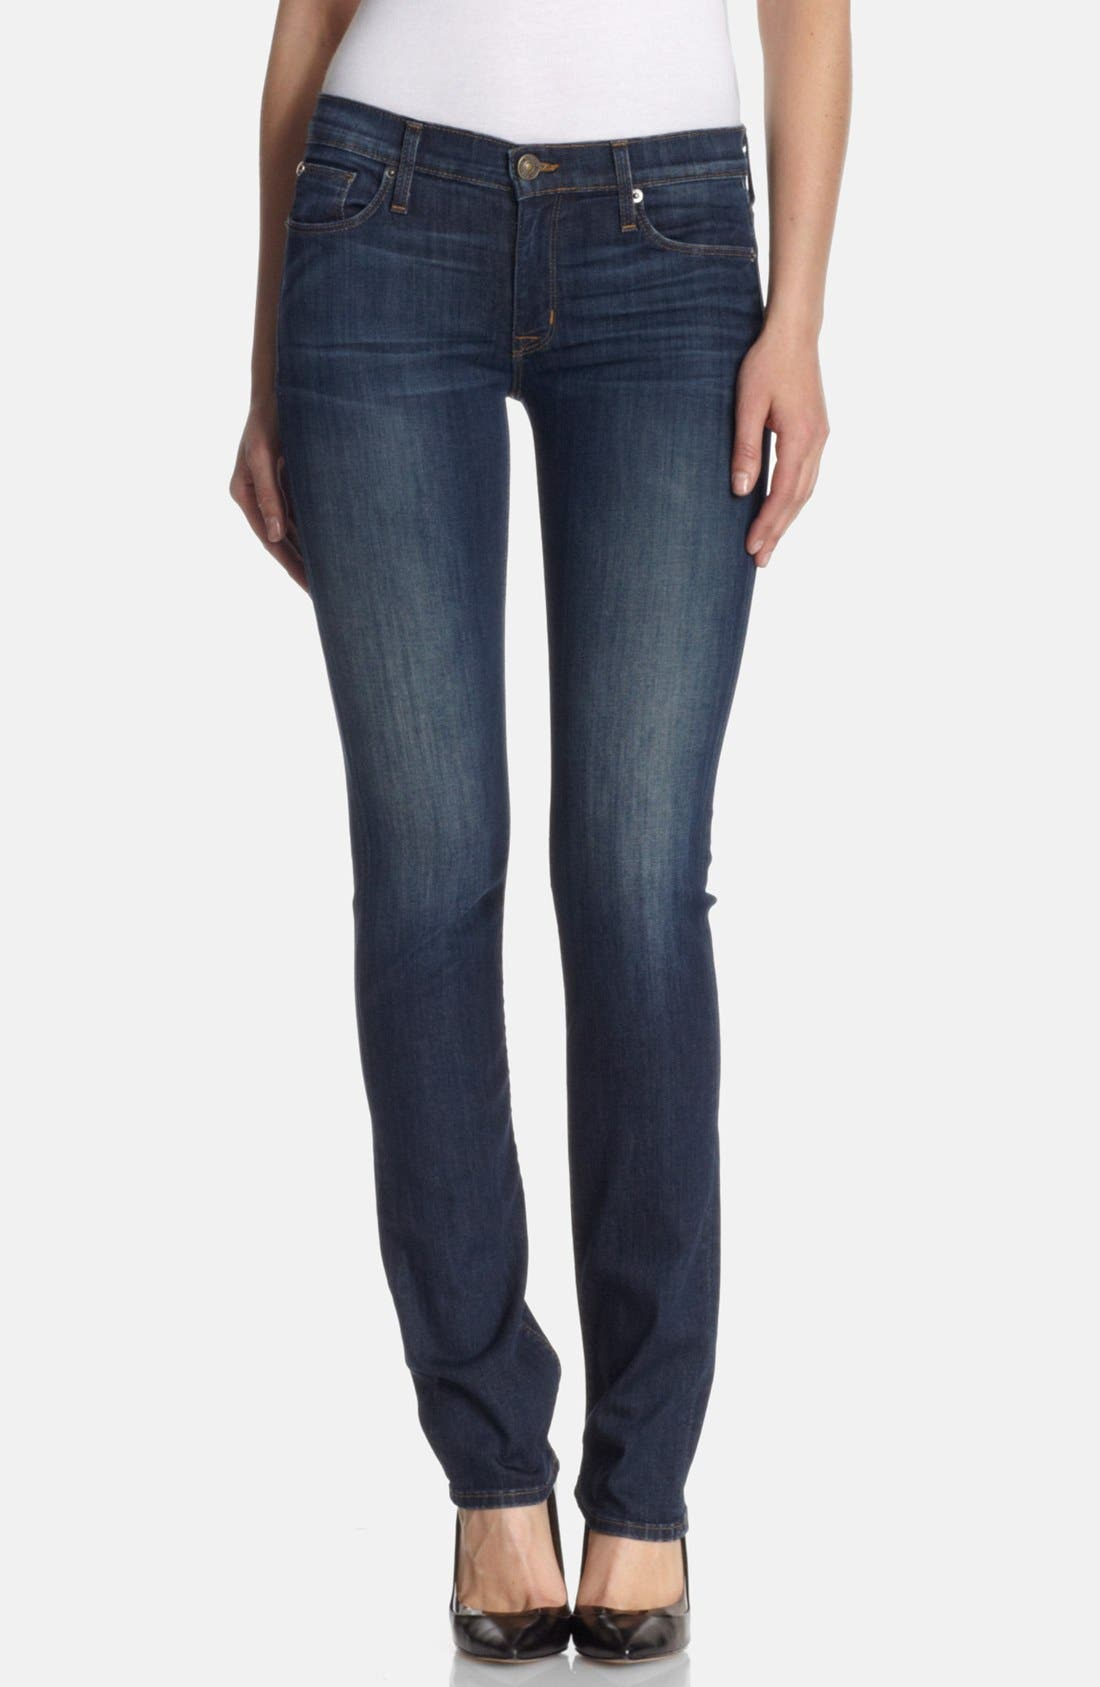 HUDSON JEANS 'Tilda' Mid Rise Straight Jeans, Main, color, 400